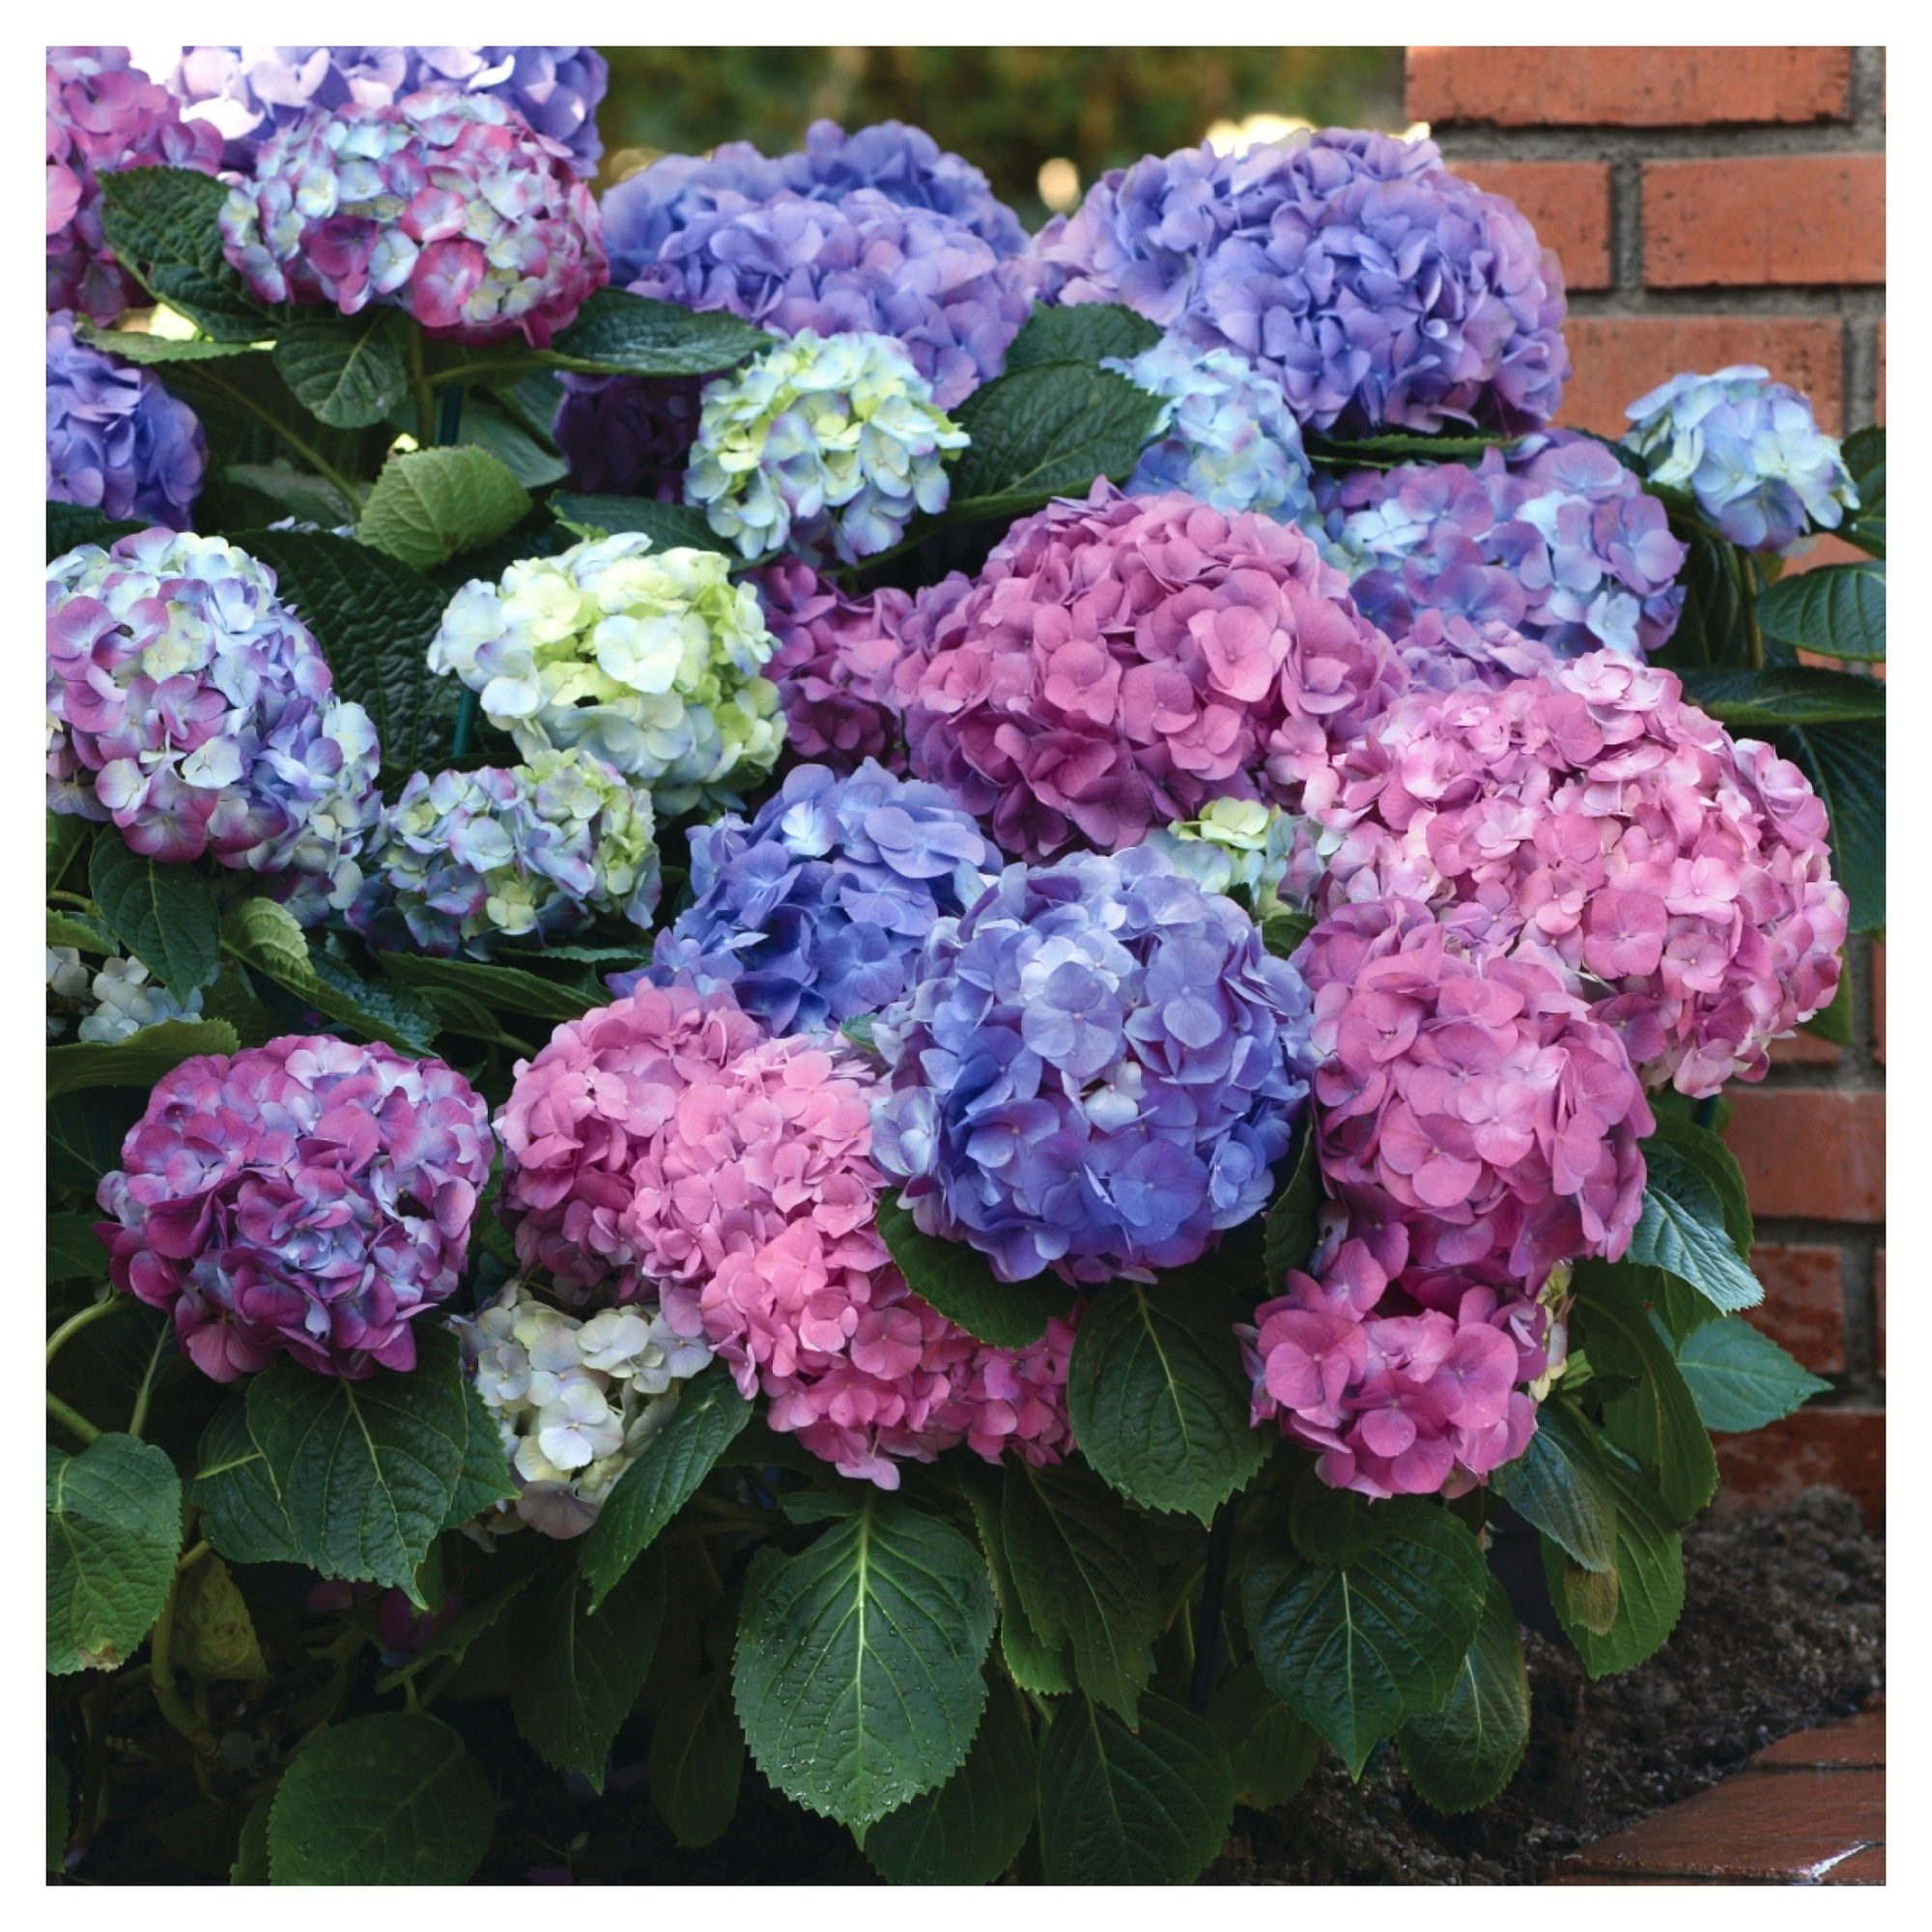 Hydrangea La Dreamin 3pc National Plant Network U S D A Hardiness Zones 5 10 With Images Plants Perennial Flowering Vines Summer Hydrangeas